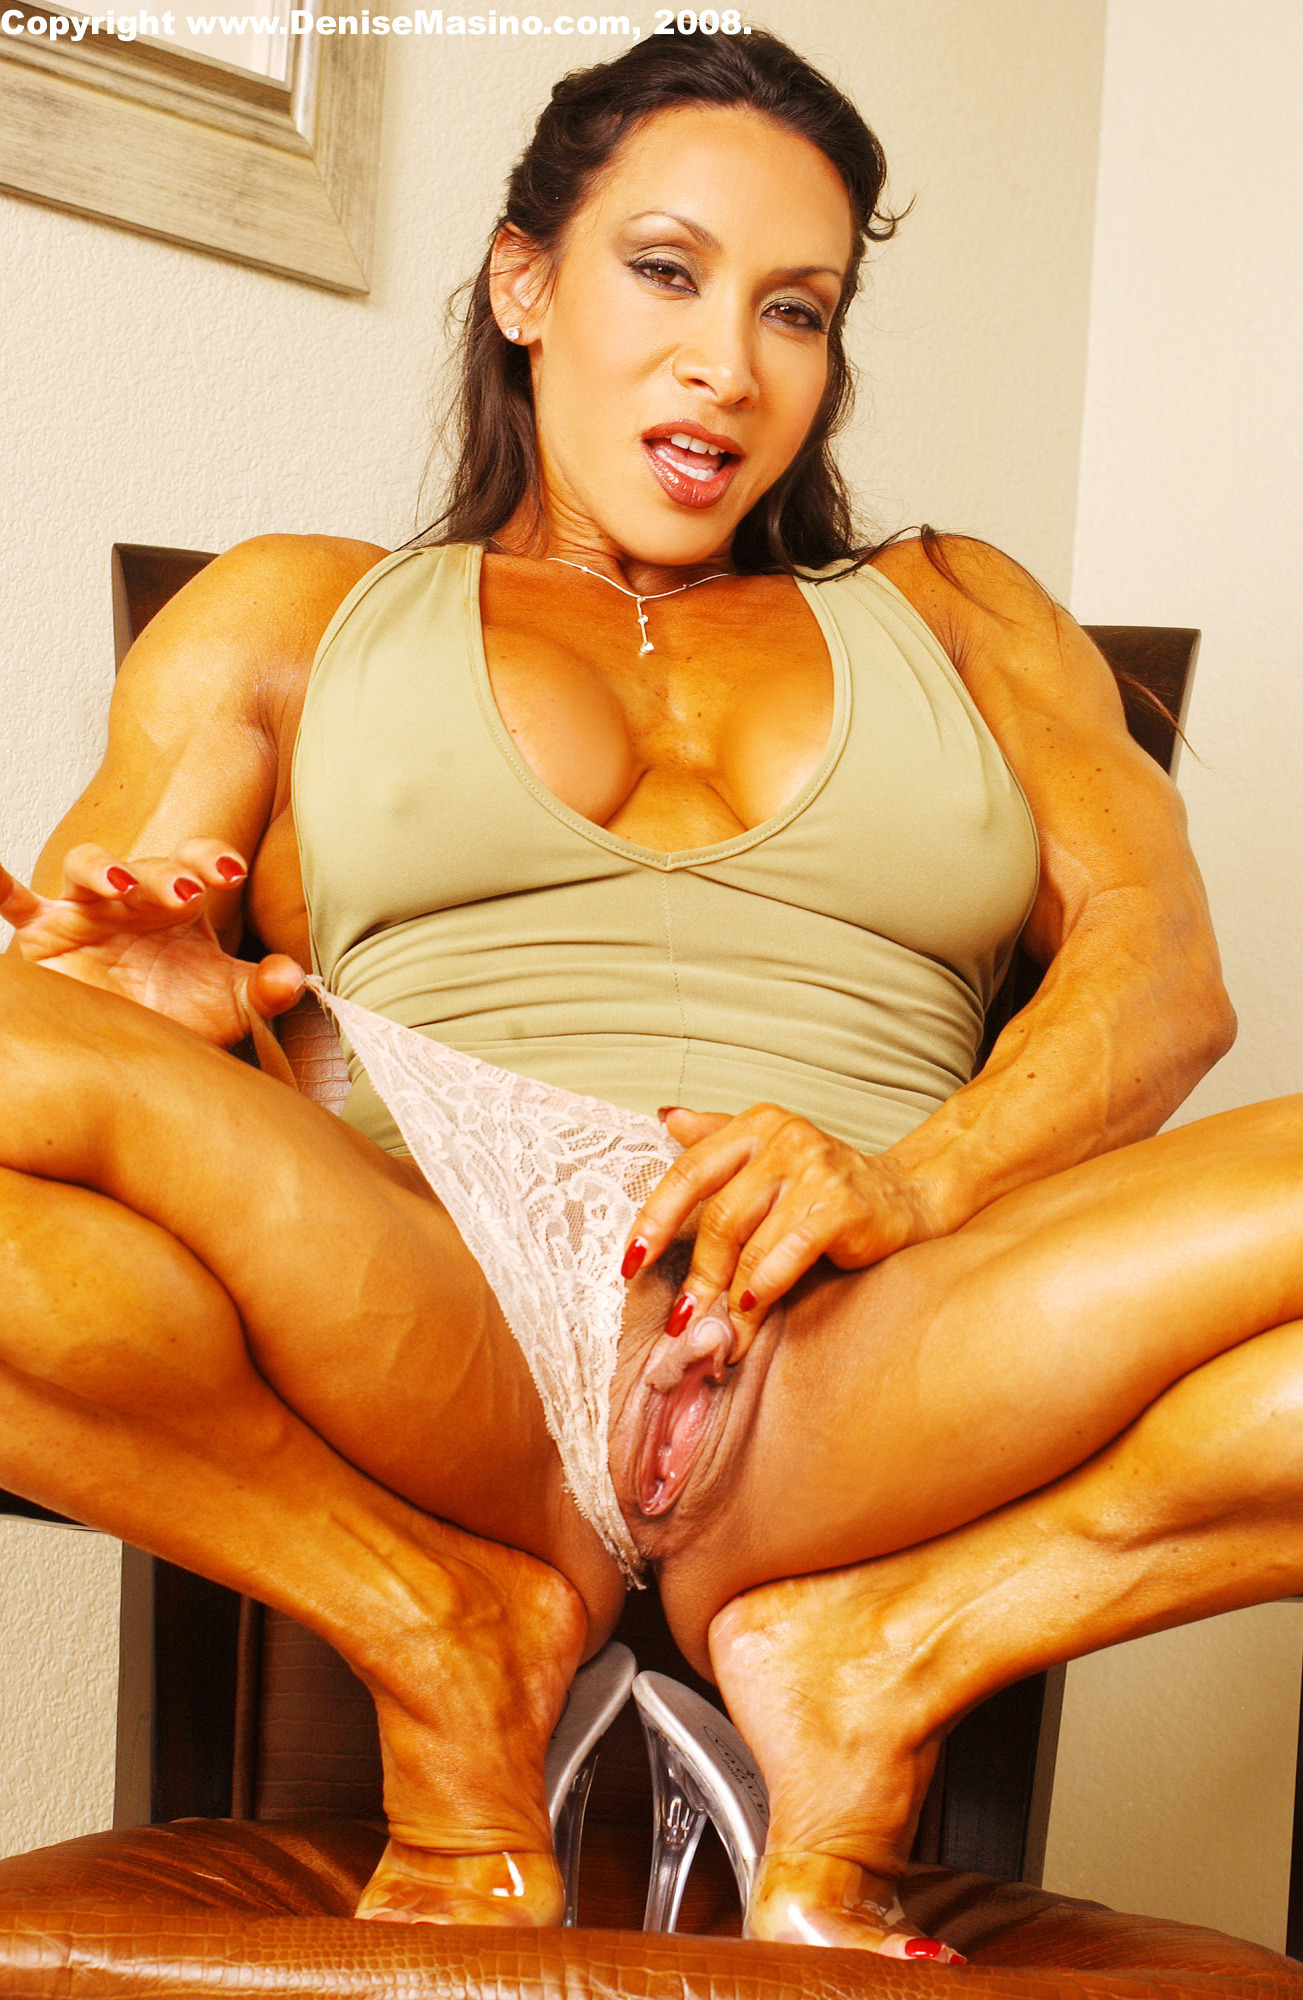 nude muscle women with dildo